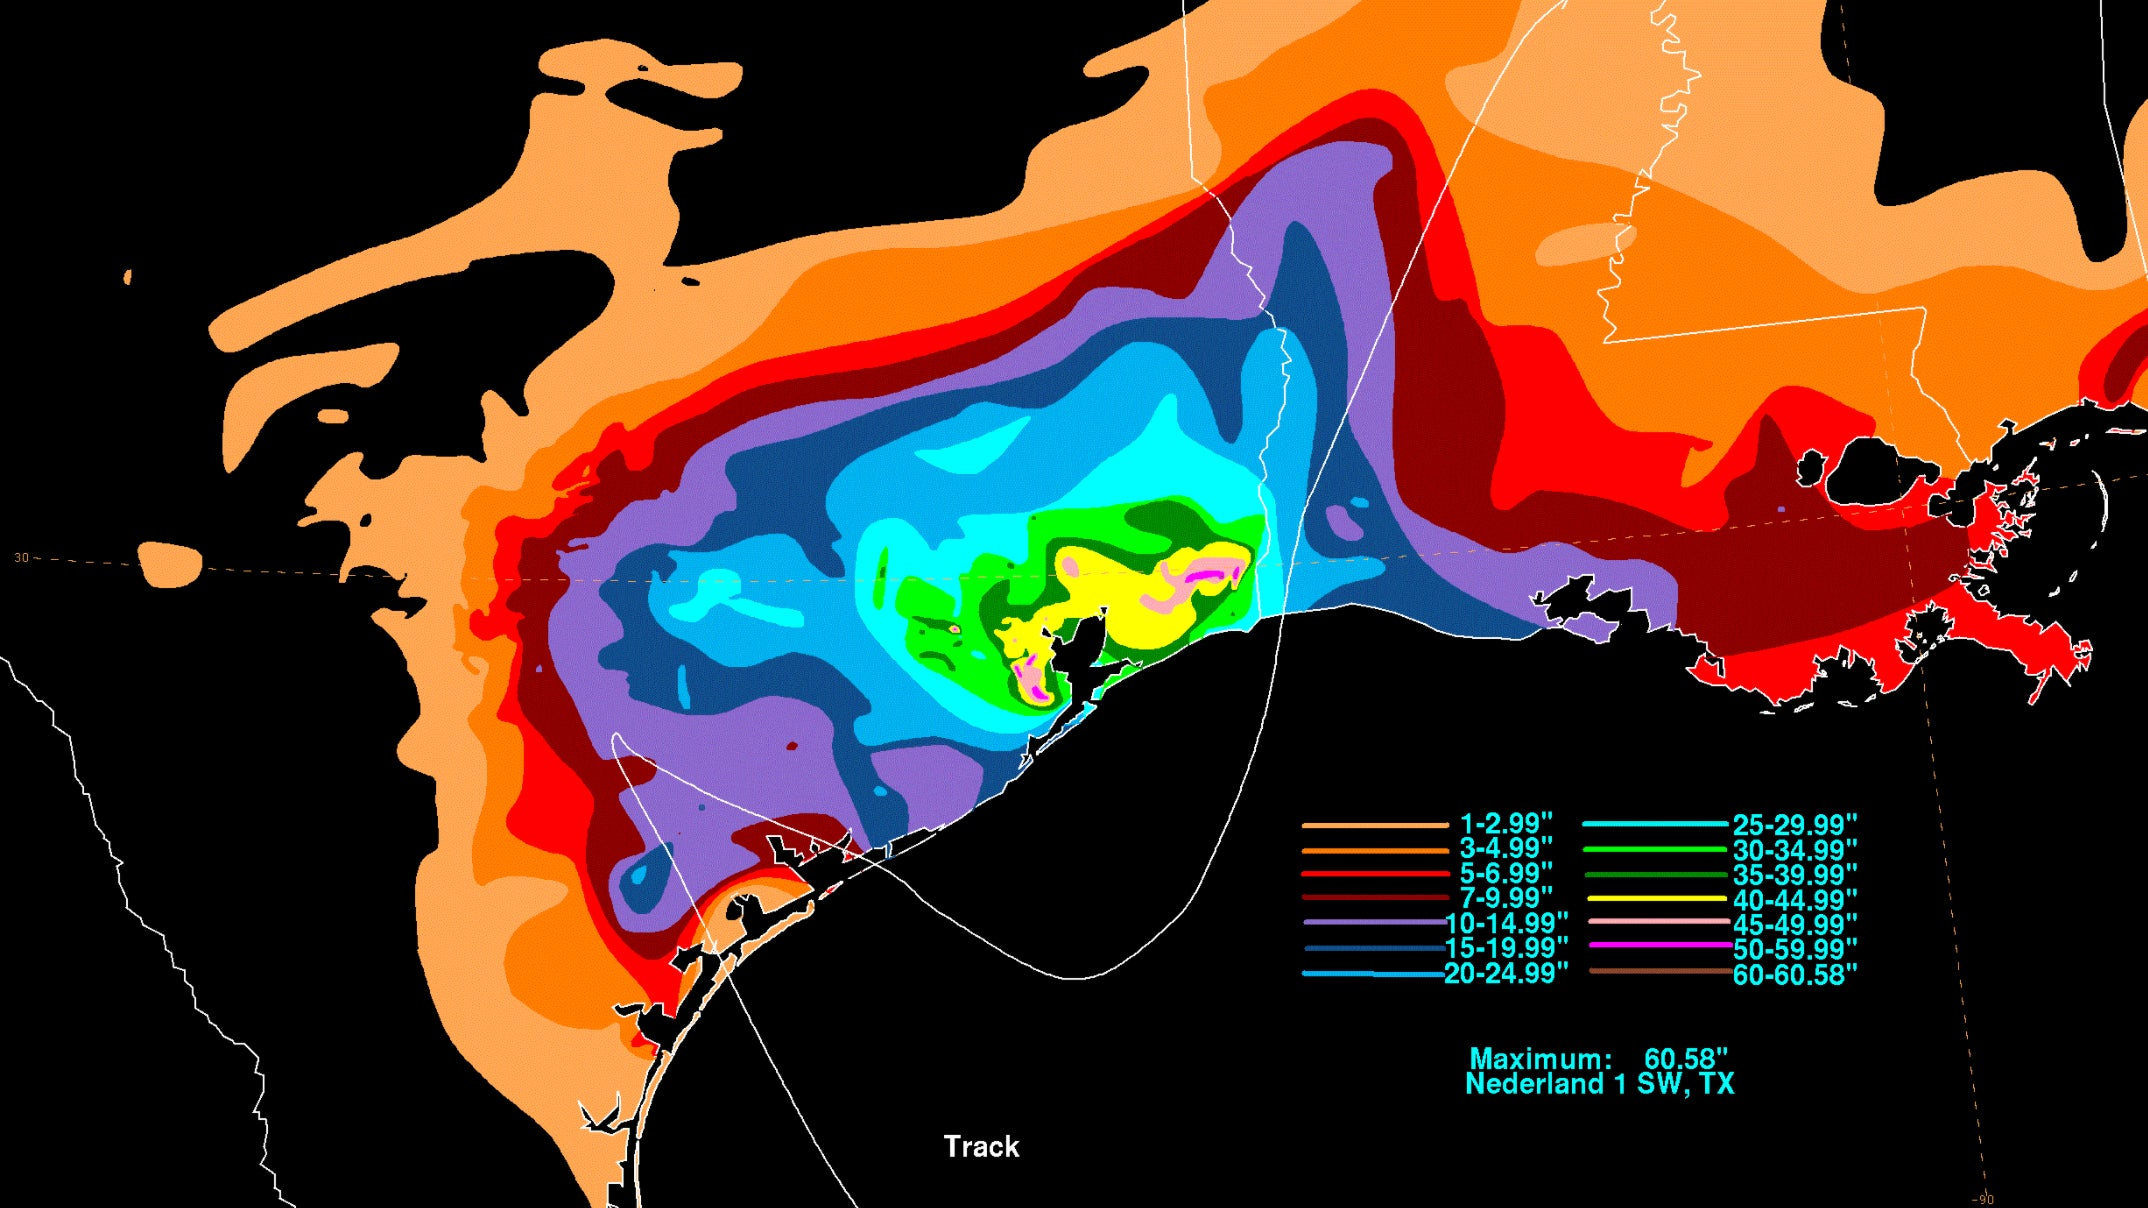 Hurricane Harvey slammed into the Texas coast at Category 4 intensity with devastating storm surge and high winds, then slowed to a crawl dumping record rainfall over southeast Texas during an agonizing crawl in late August 2017, producing massive flooding. (Map: David Roth/NOAA/NWS/WPC)